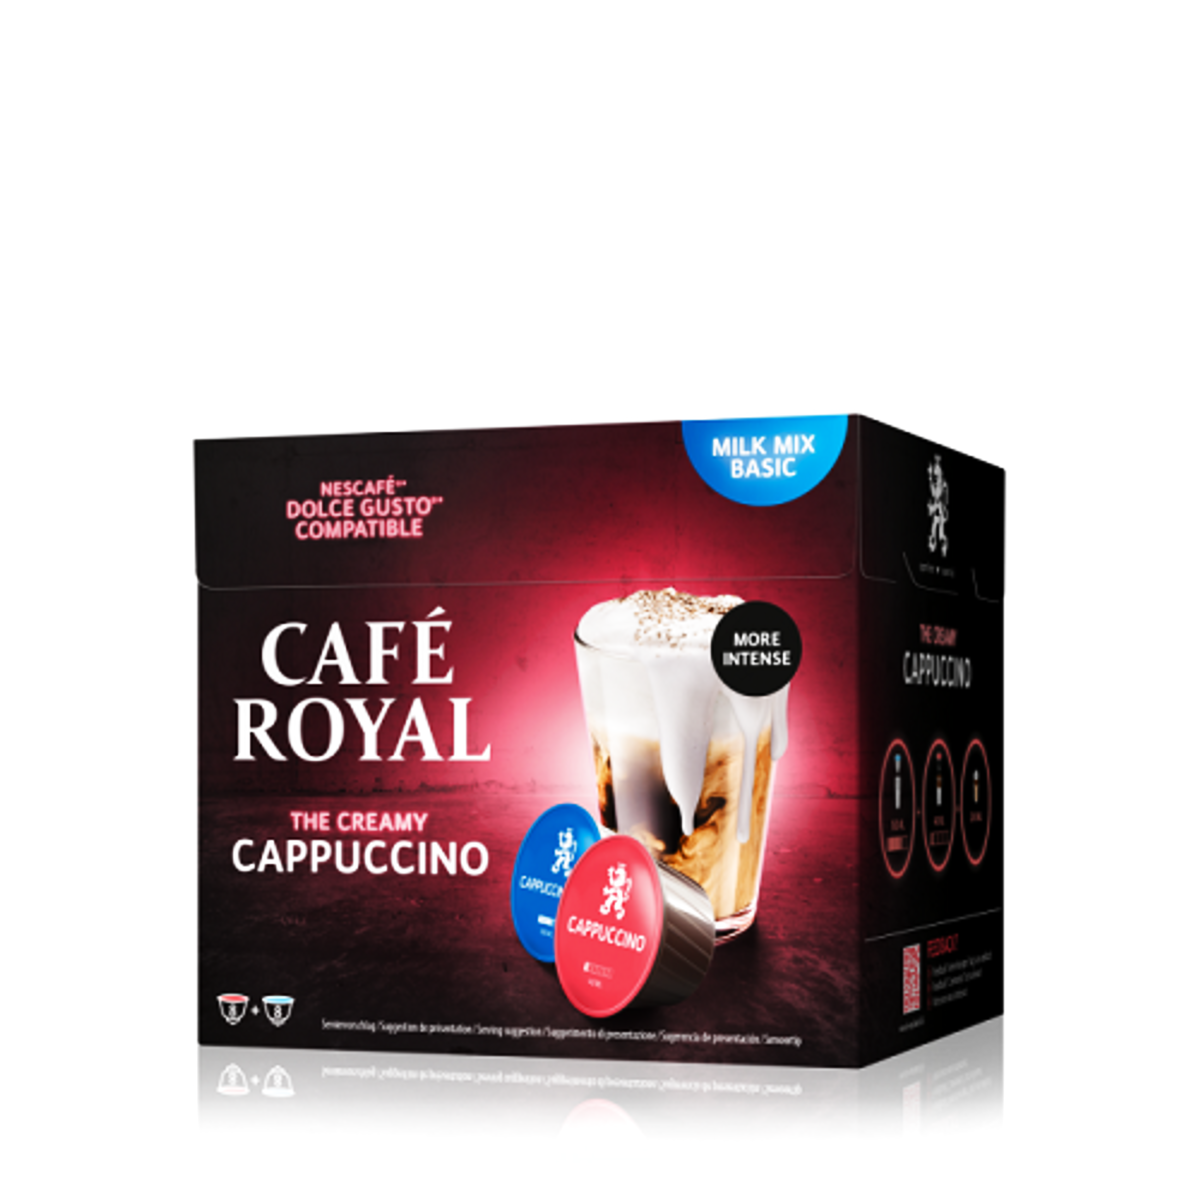 Капсули Café Royal Cappuccino - Dolce Gusto συμβατές κάψουλες